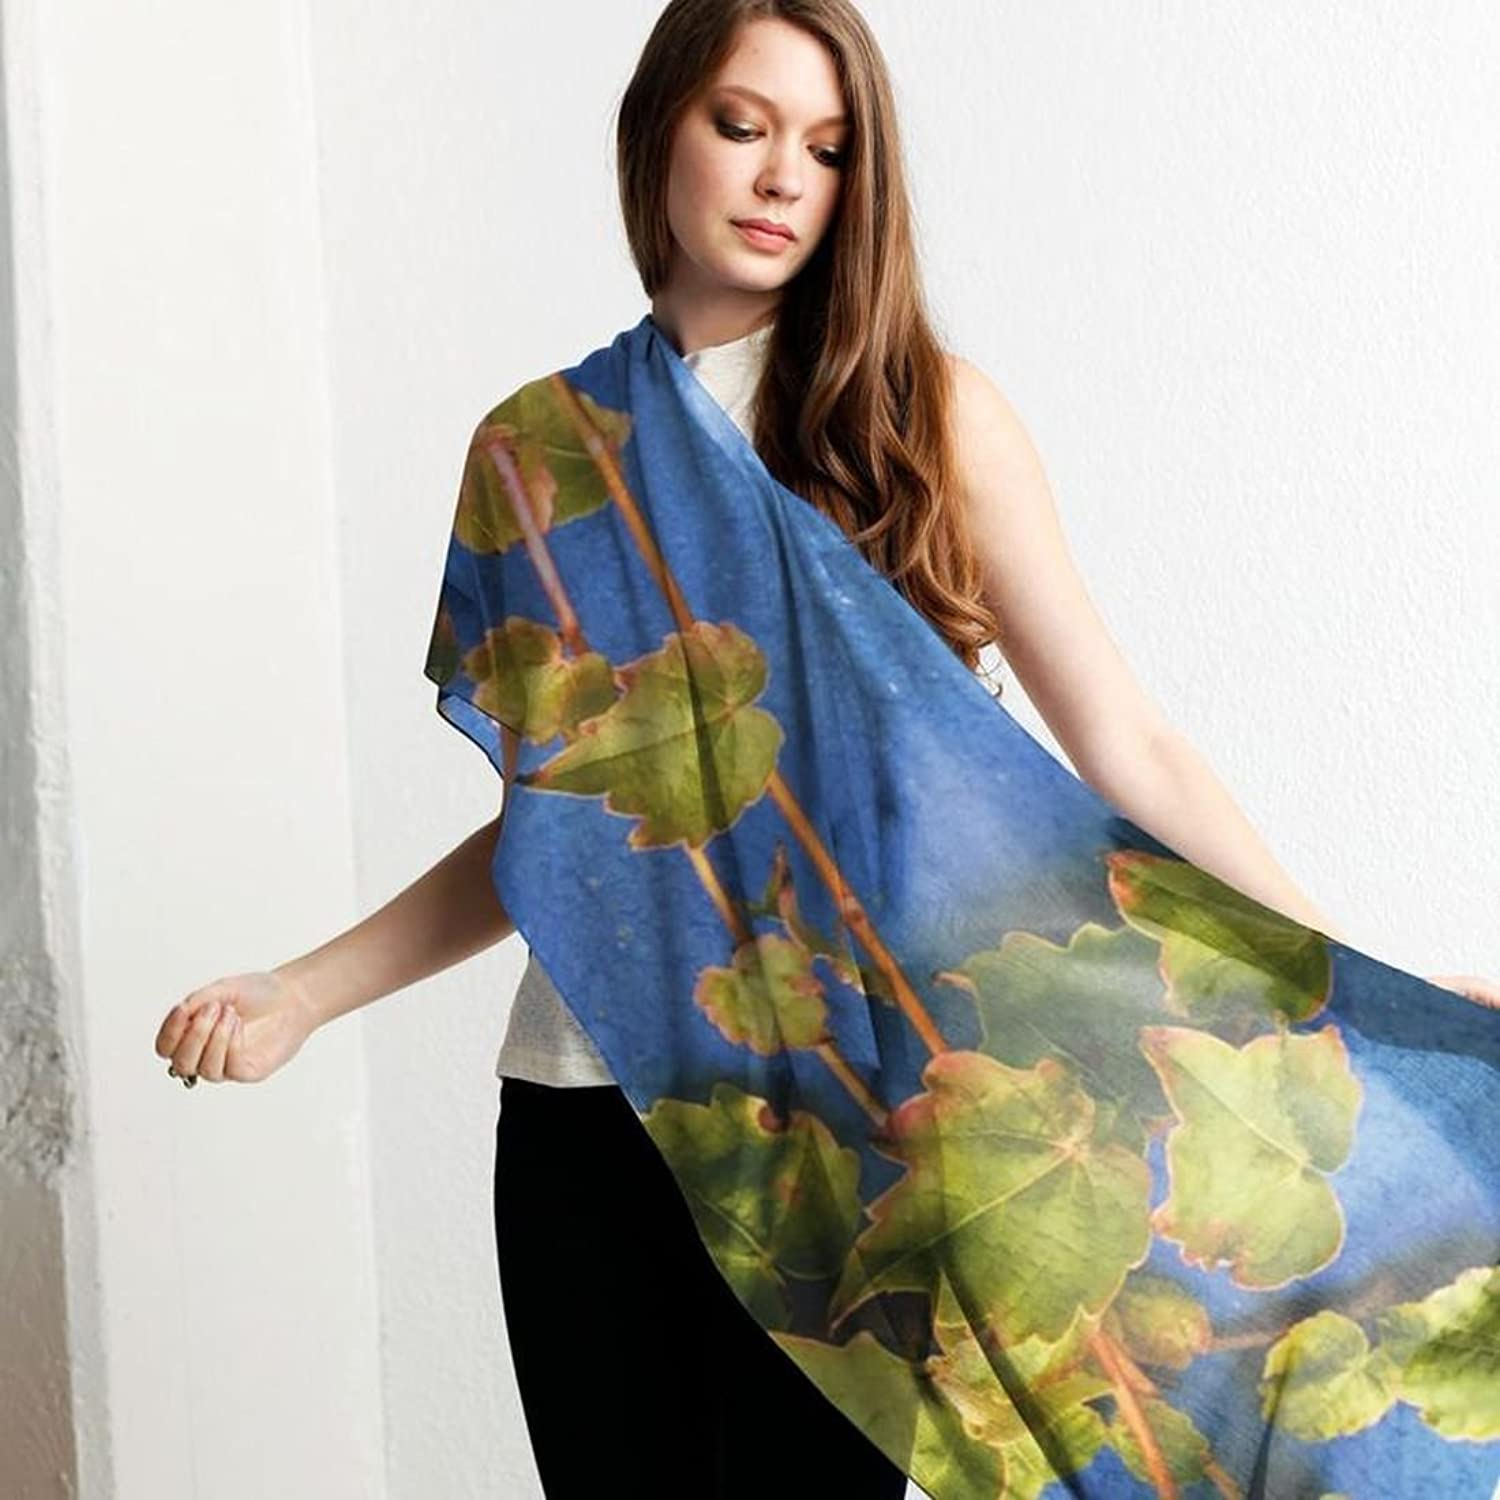 Buy Online New Free Shipping Release Dates Modal Scarf - leaf lady by VIDA VIDA Excellent Good Selling Cheap Price 5yF2Z